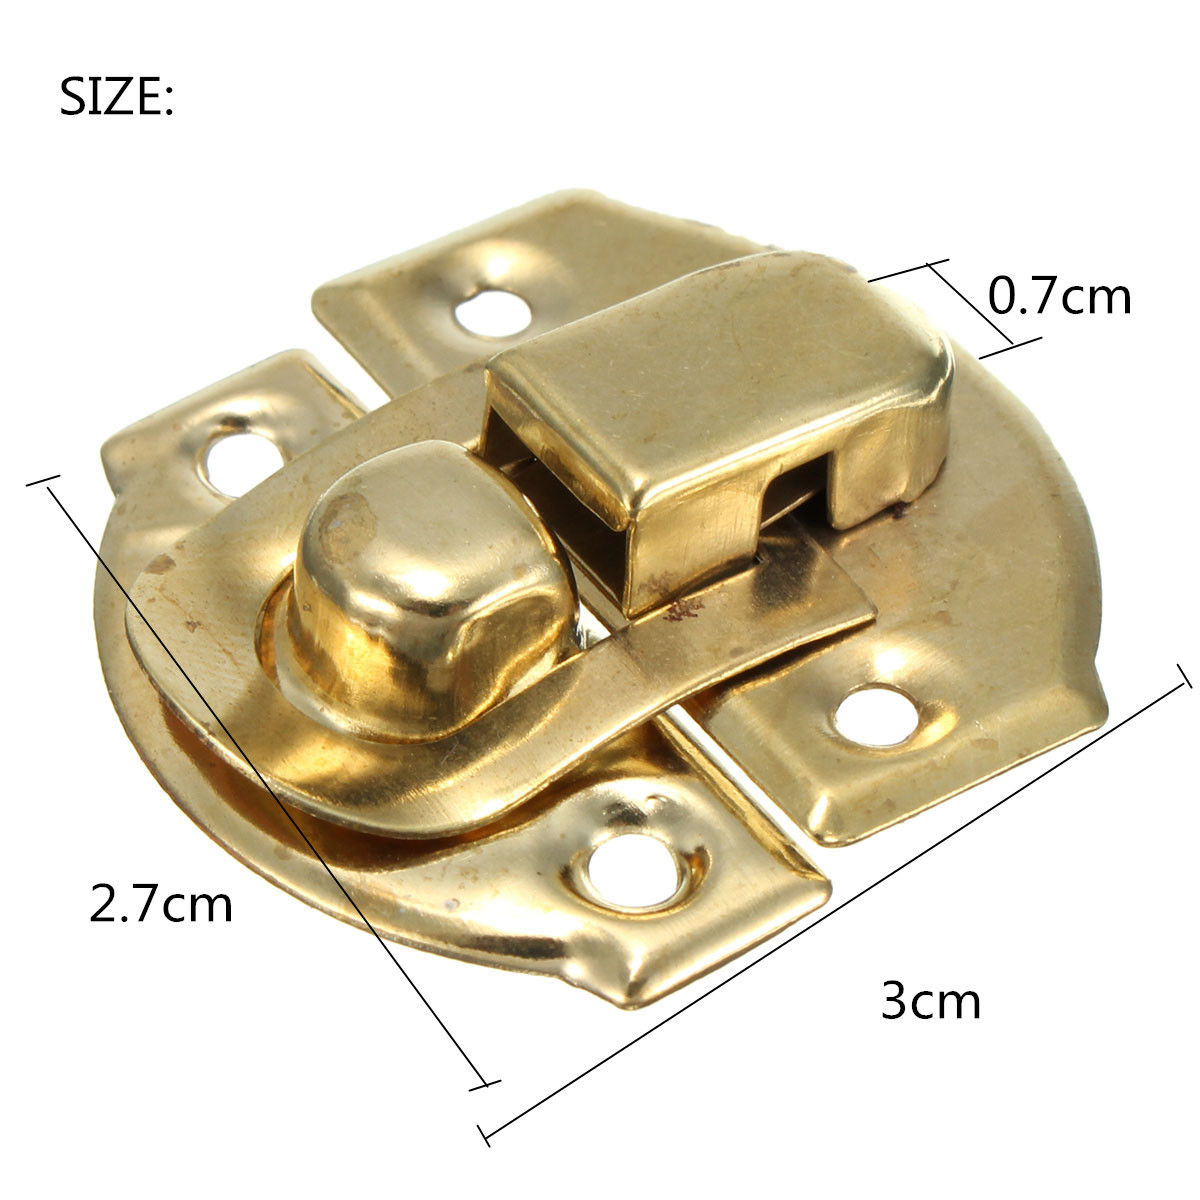 Cigar Jewellery Box Toggle Catch Antique Style 1x Mini Thumb Size Brass Latch